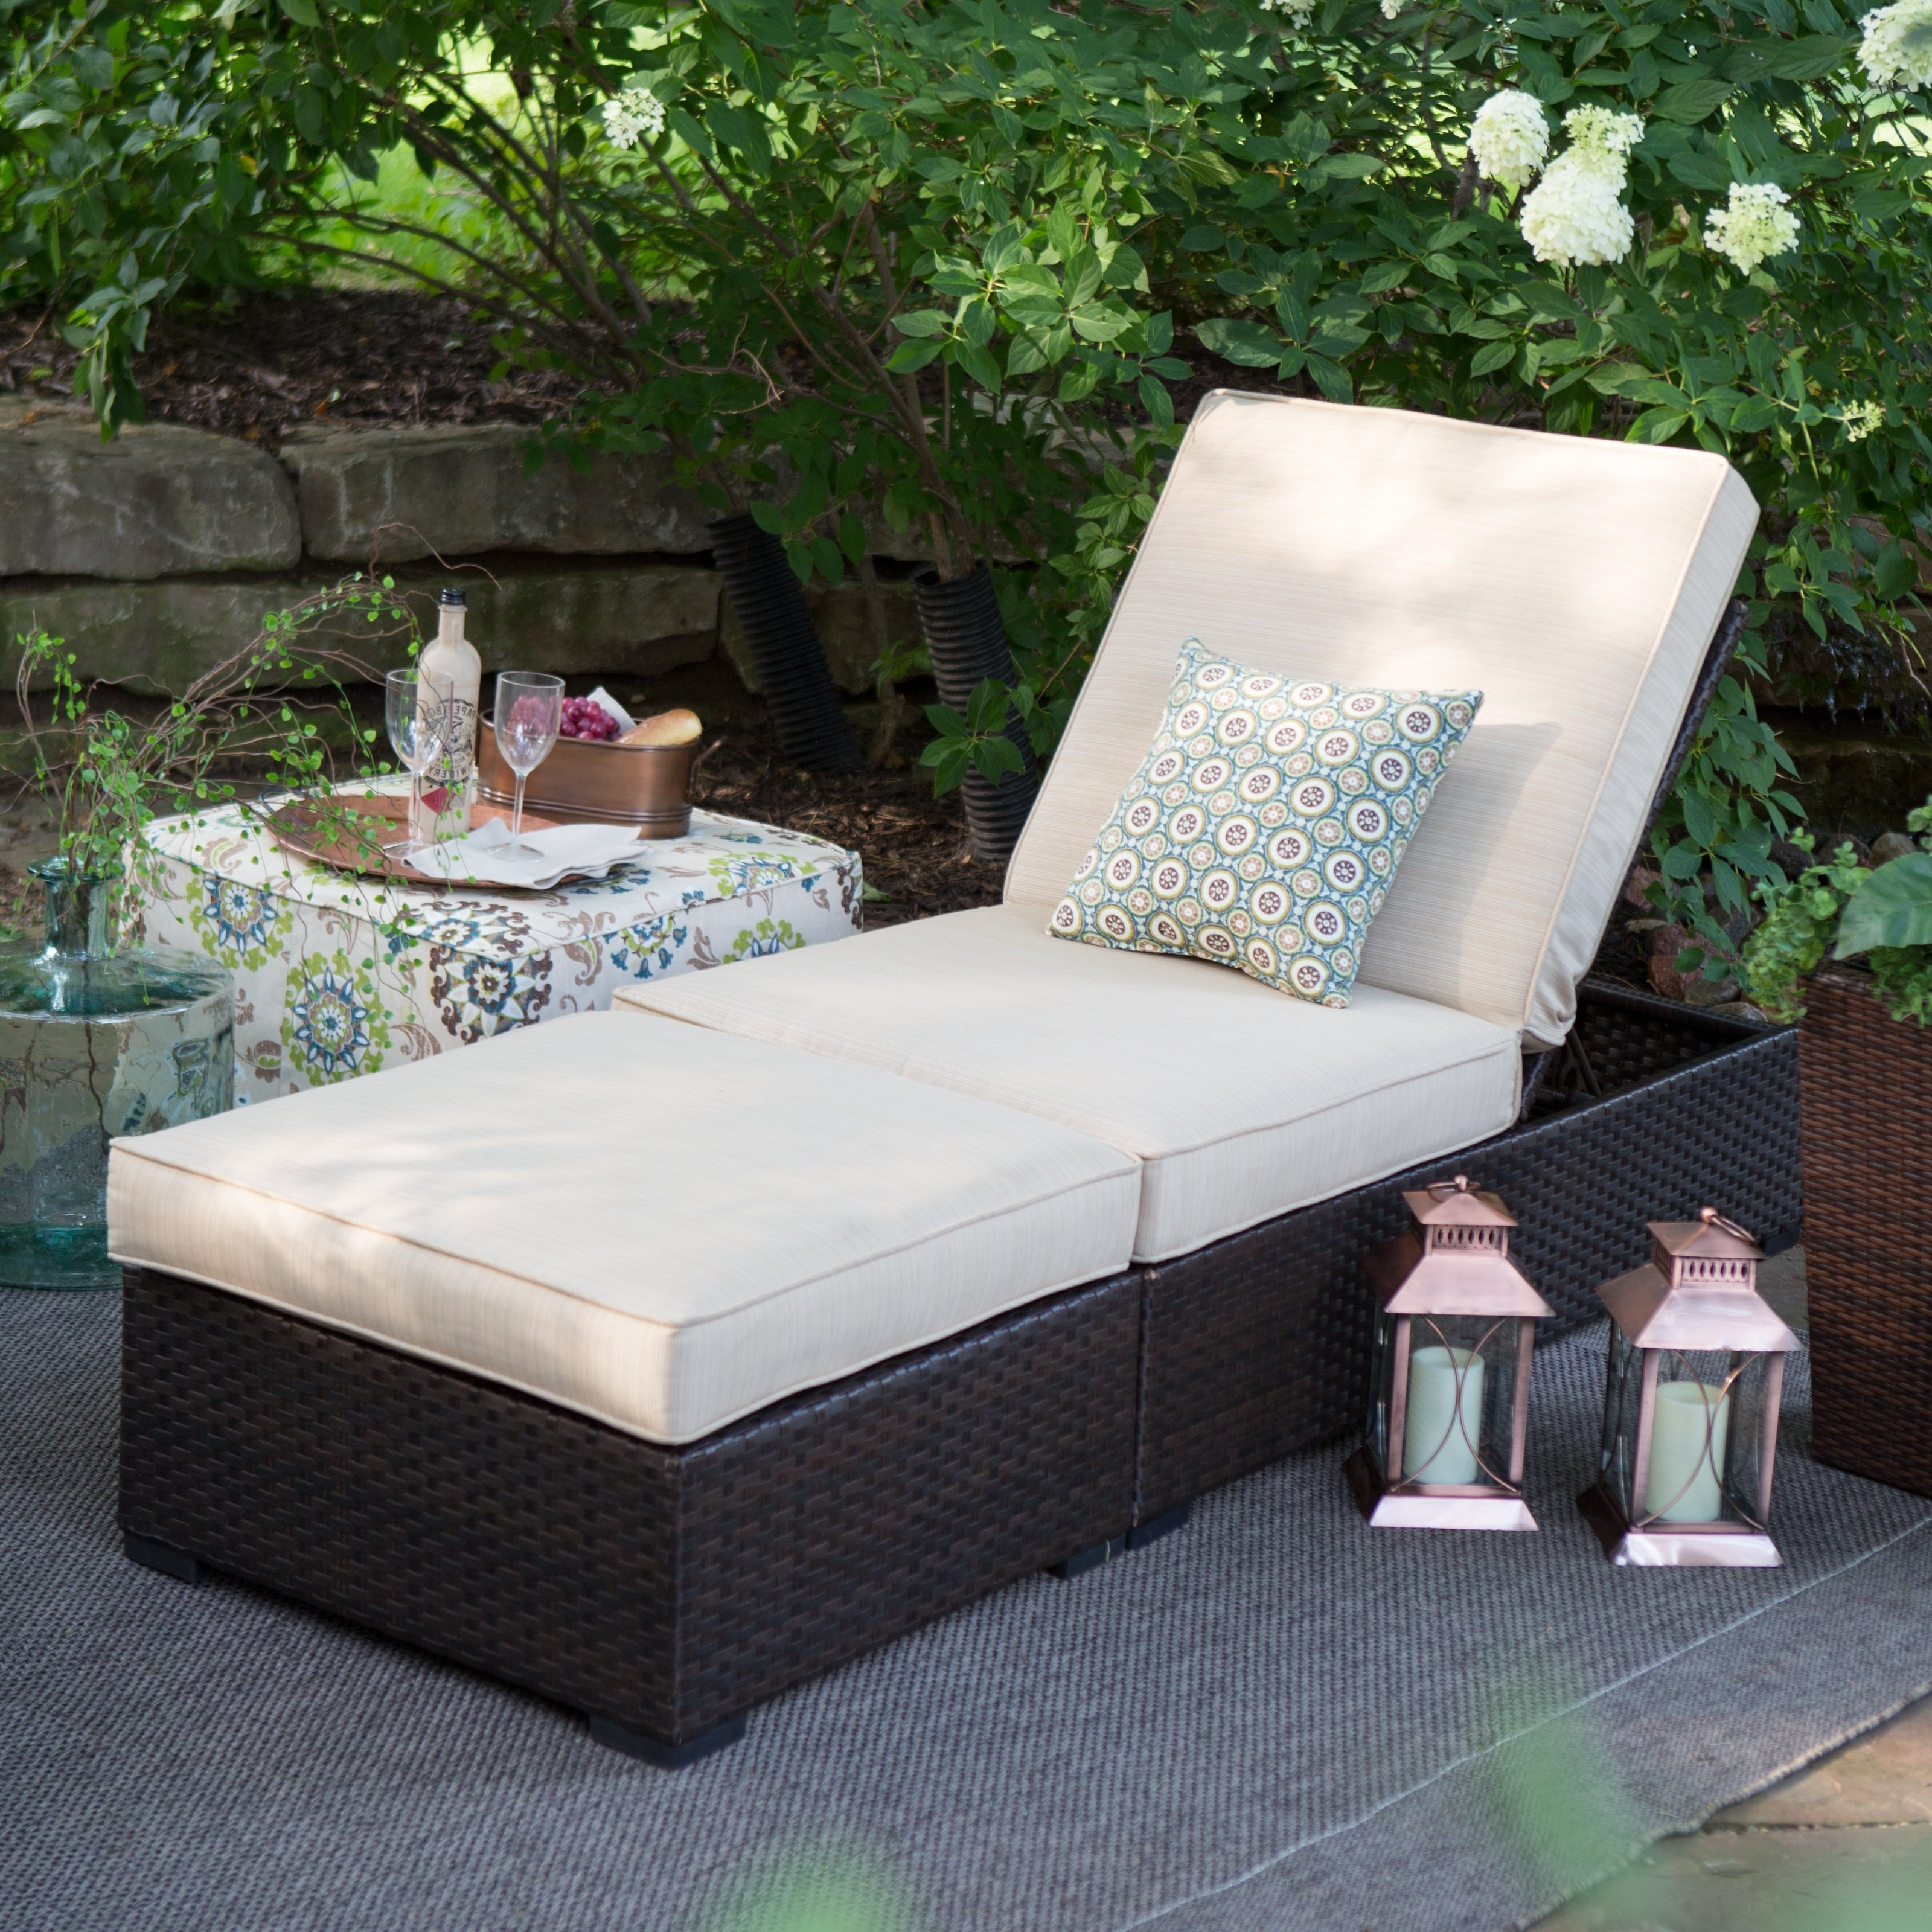 Outdoor Wicker Chaise Lounges Regarding Trendy Belham Living Marcella Wide Wicker Chaise Lounge With Ottoman (View 10 of 15)